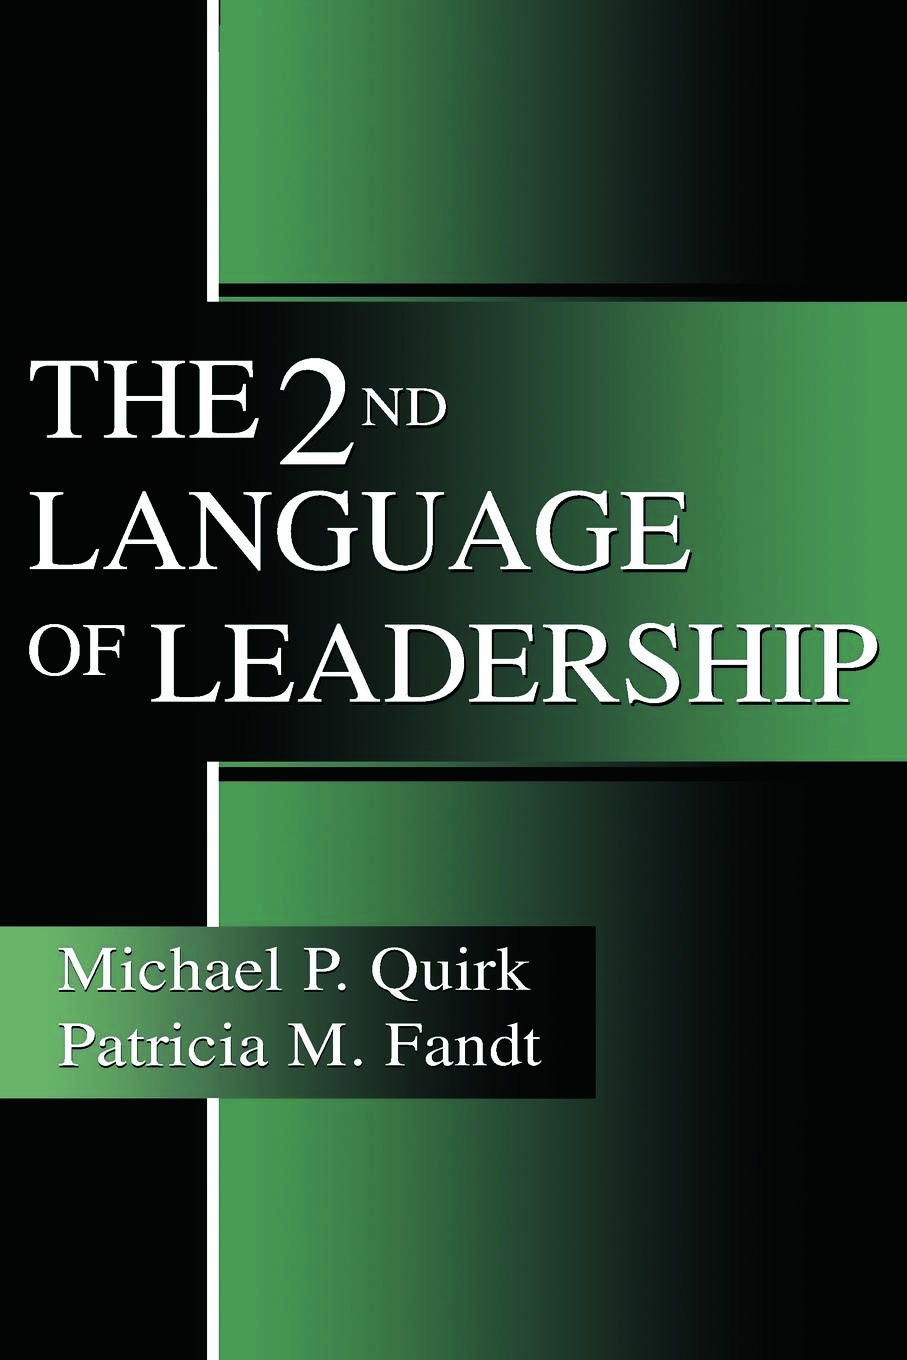 The 2nd Language of Leadership (Paperback) book cover